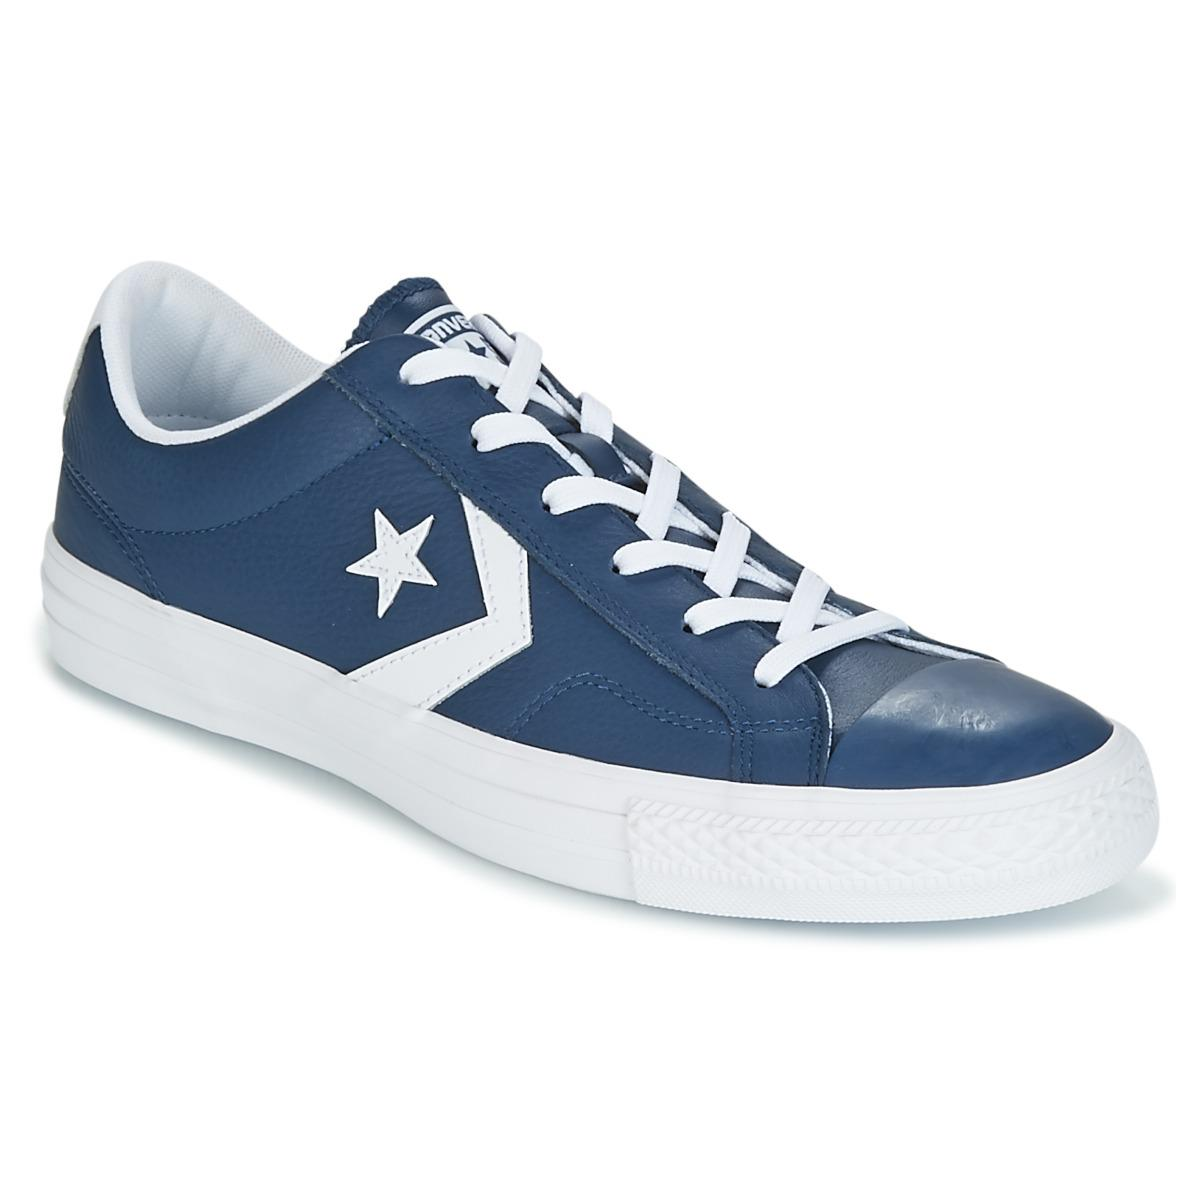 7116706e8979ec Converse Star Player Ox Leather Essentials Shoes (trainers) in Blue ...